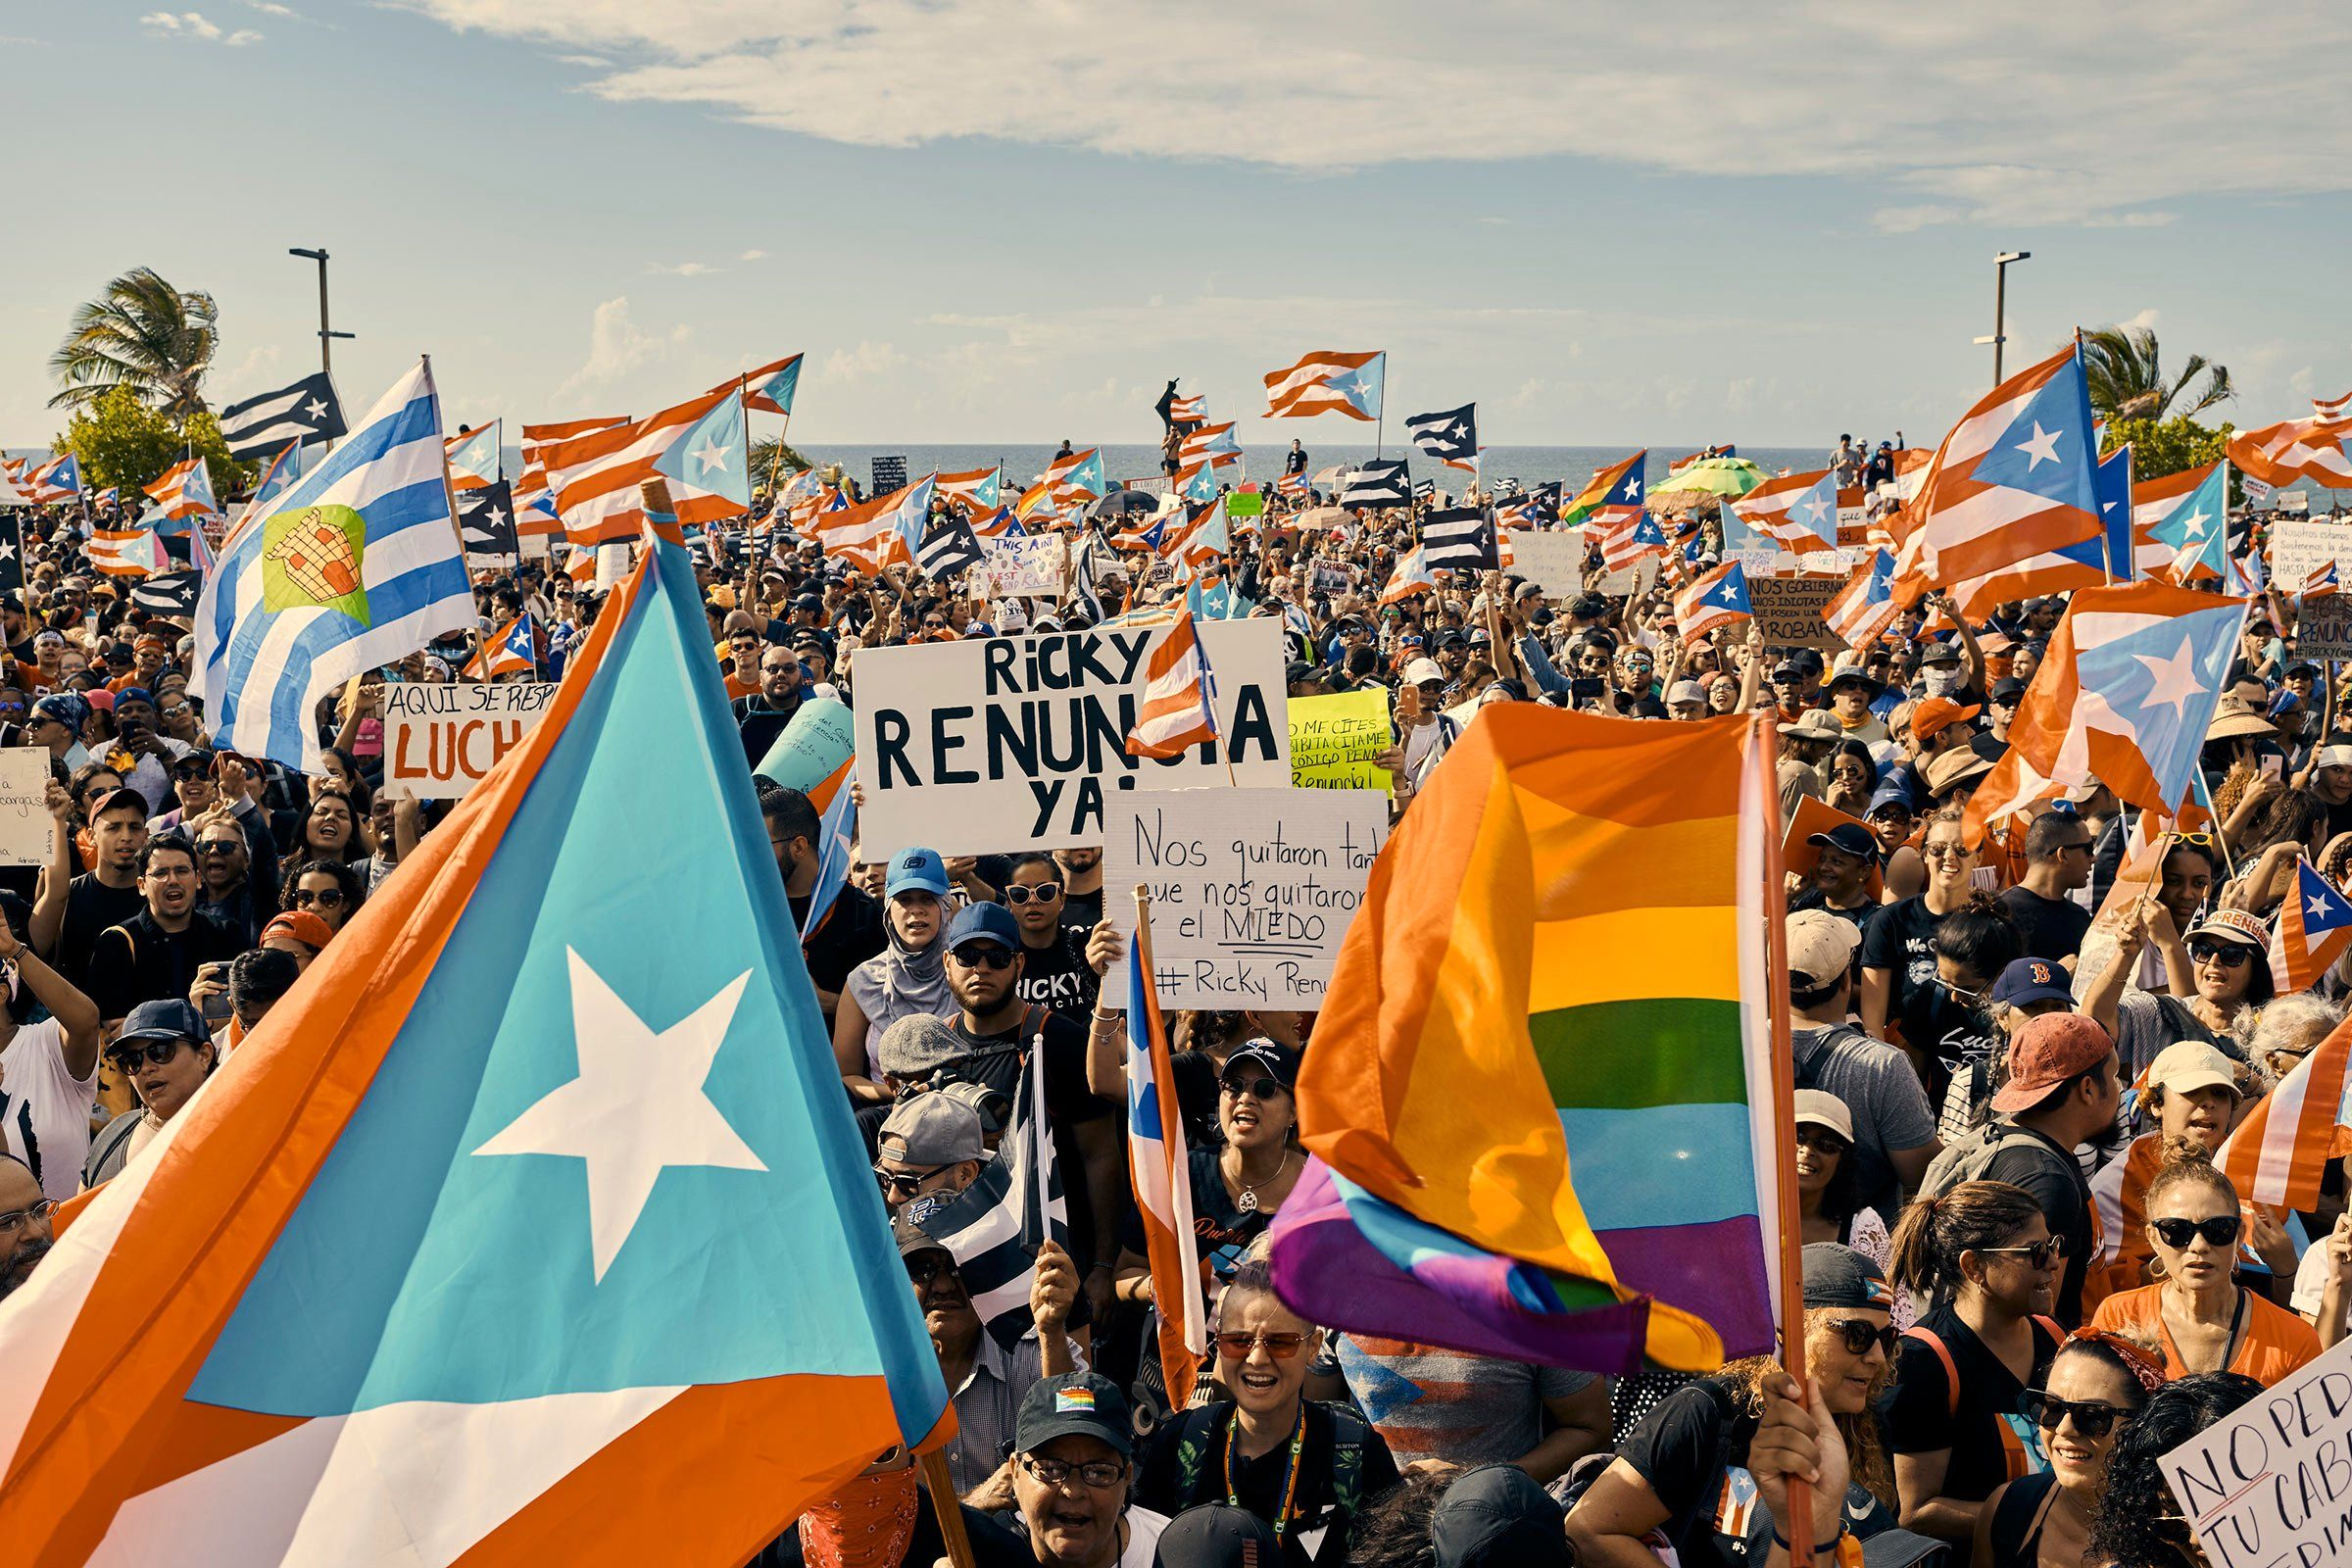 Protesters demanding #RickyRenuncia—a hashtagged demand for the governor's resignation—took to the streets of San Juan, Puerto Rico, on July 17. Gov. Ricardo Rosselló later announced he would resign in August, after the biggest protests to seize the U.S. territory in decades.